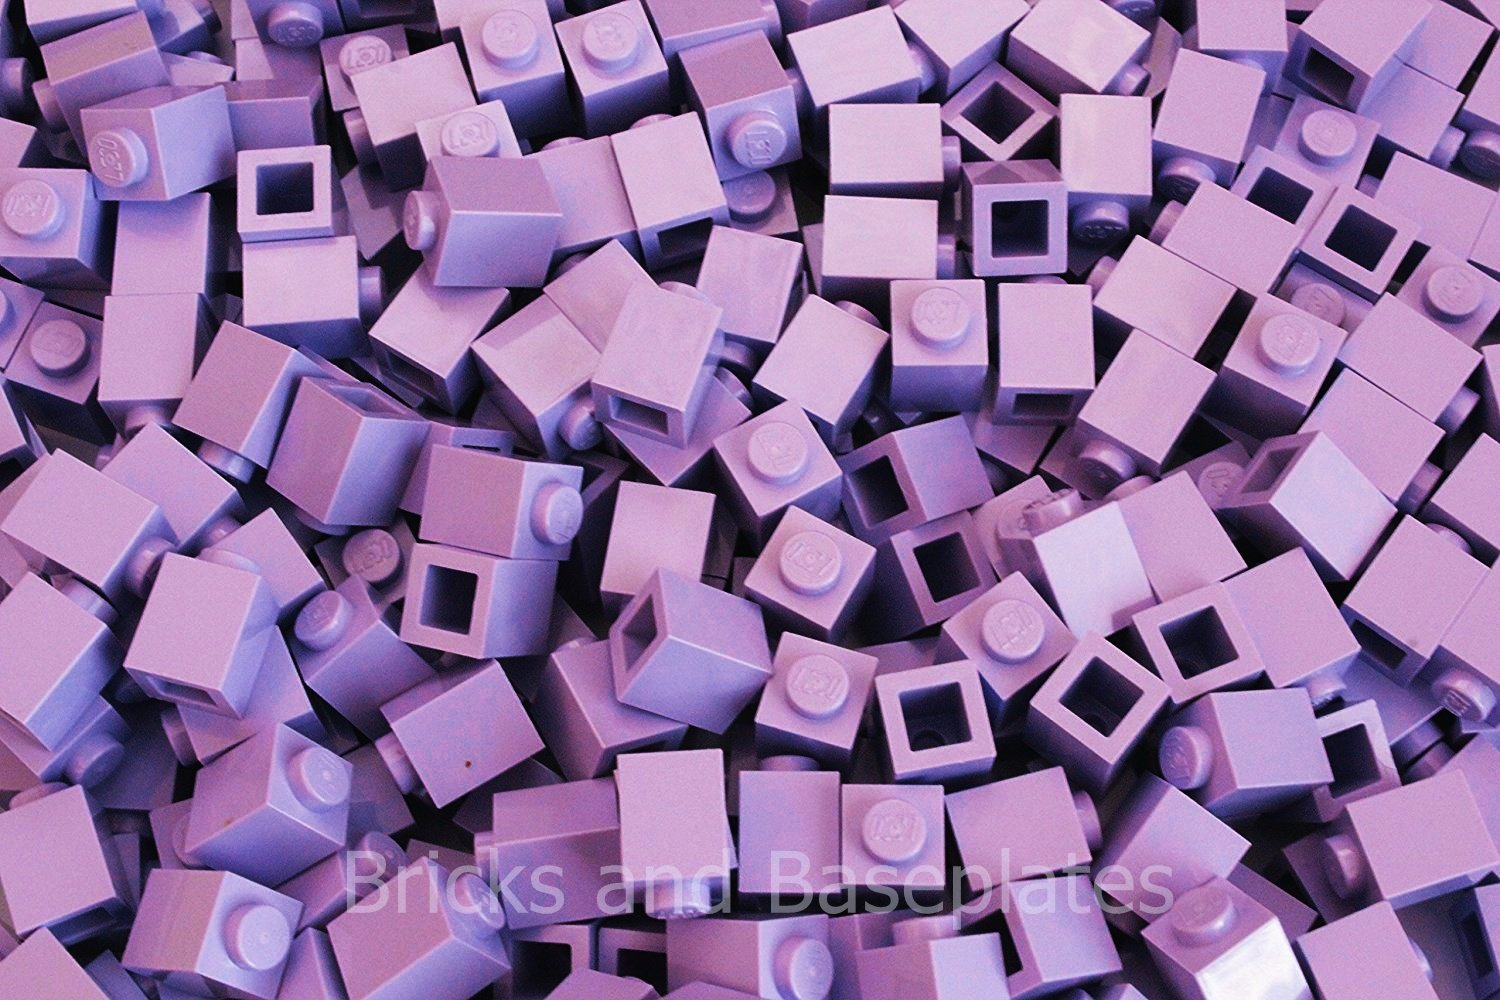 LEGO® BRICKS 1000 x LAVENDER 1x1 Pin Part 3005 Stud Dimensions 1 x 1 x 1 Dimensions LxWxH  0.8cm x 0.8 x 1.1cm FREE UK TRACKED POSTAGE From sets Supplied in Bricks and Baseplates® Sealed Packaging